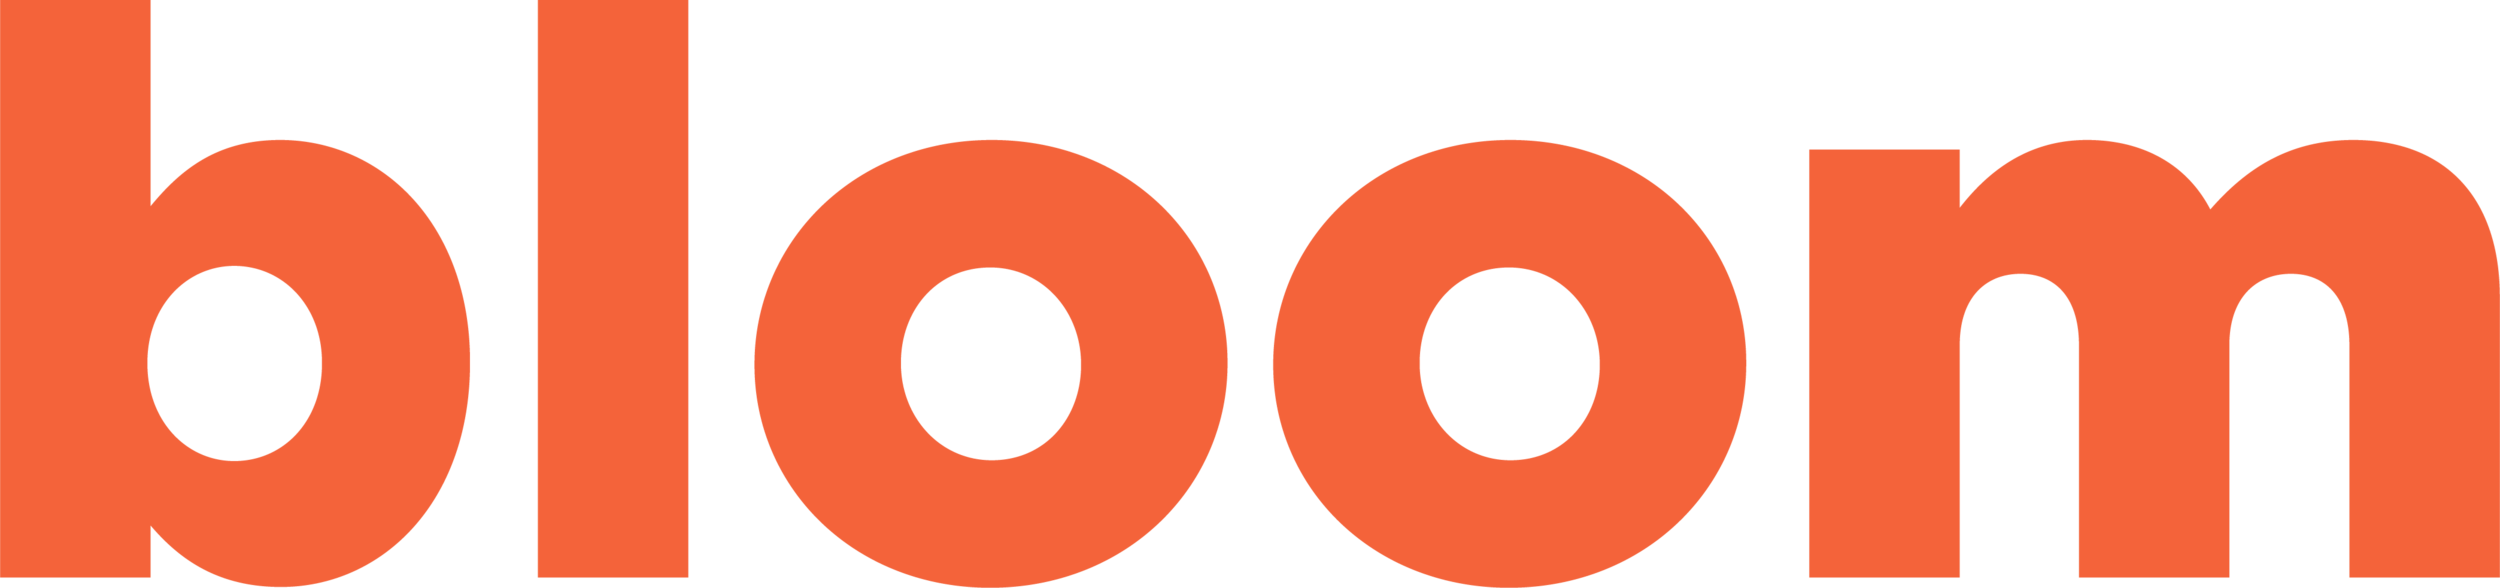 bloom_logo_new_colour.png